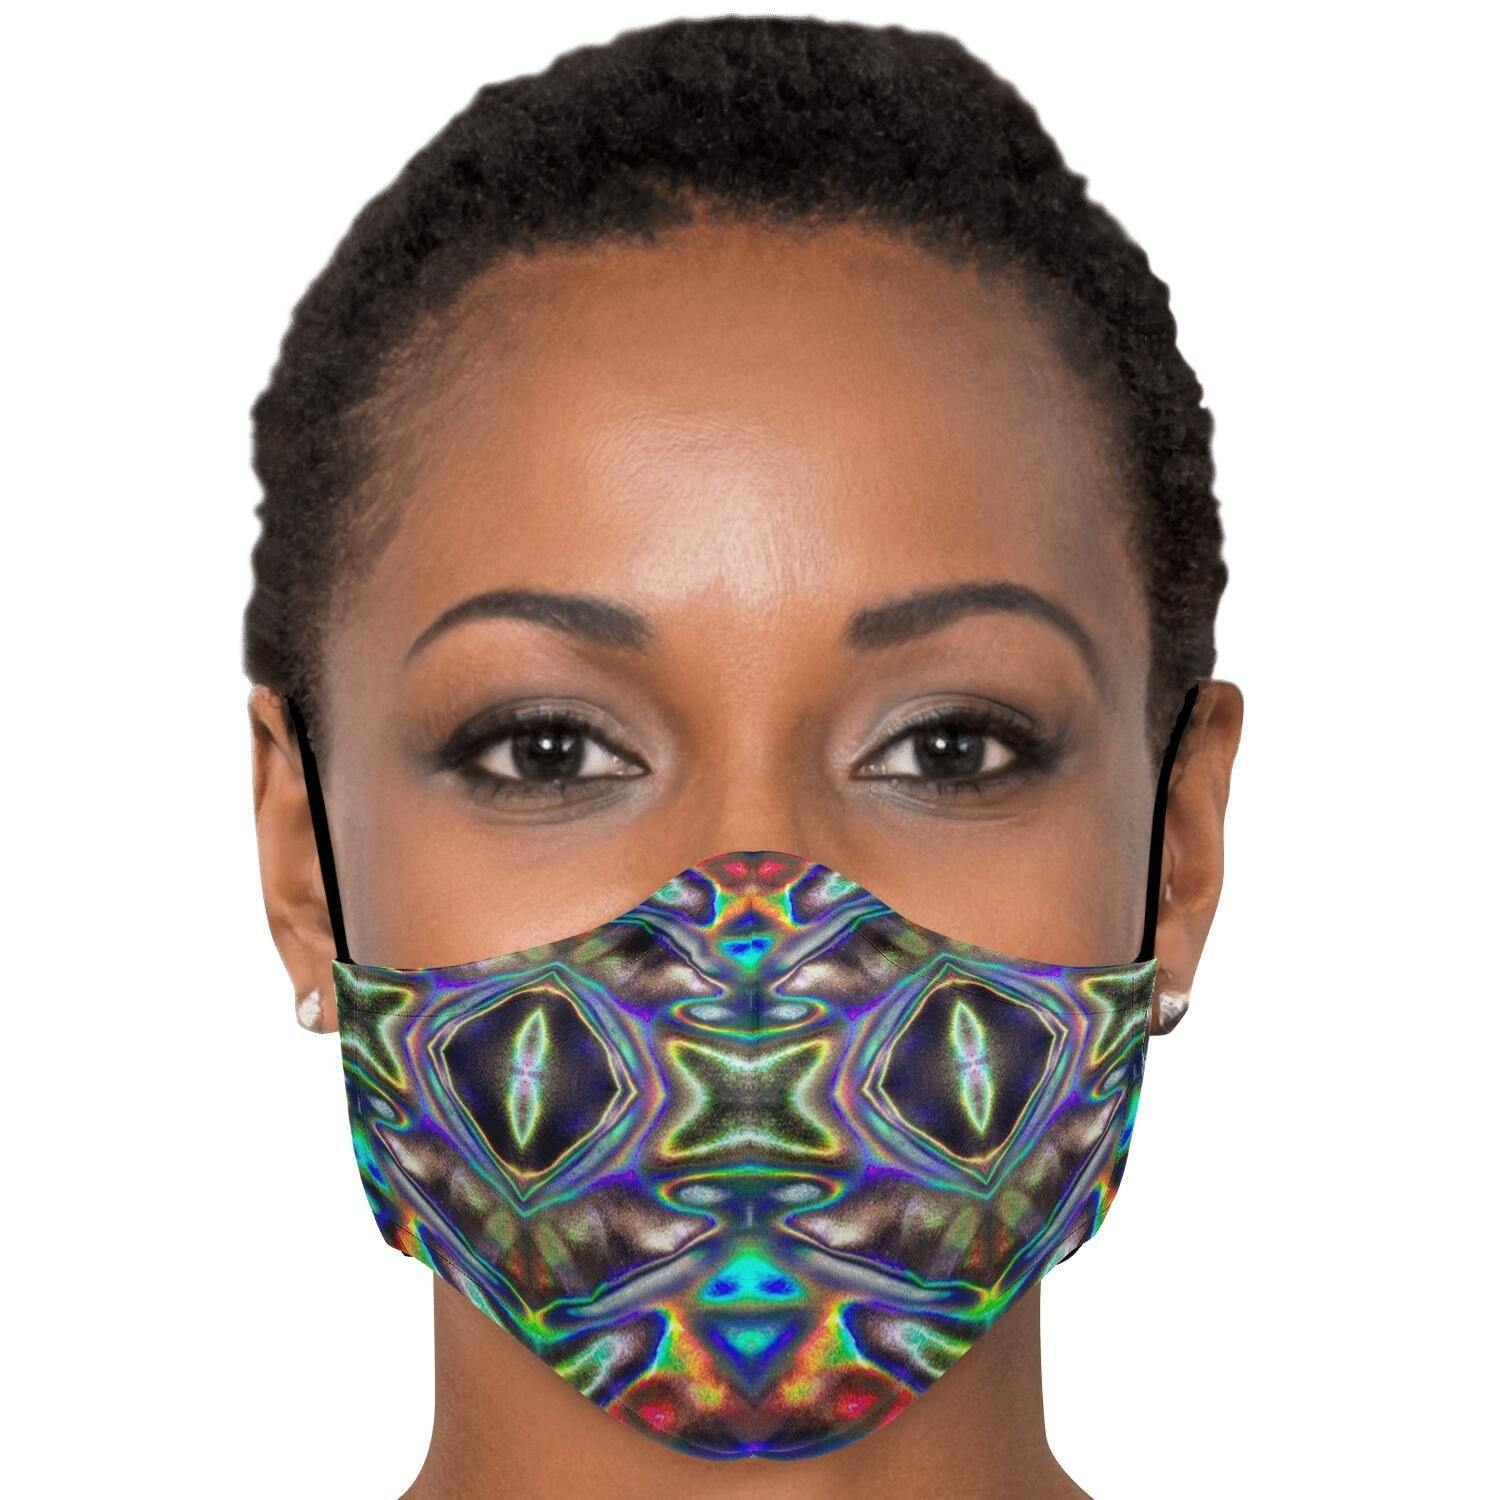 Same Day Shipping | Holographic Print FACE MASK | 2pcs PM 2.5 Carbon Filters Included | Adult | Washable, Nose Clip, Adjustable Ear Straps